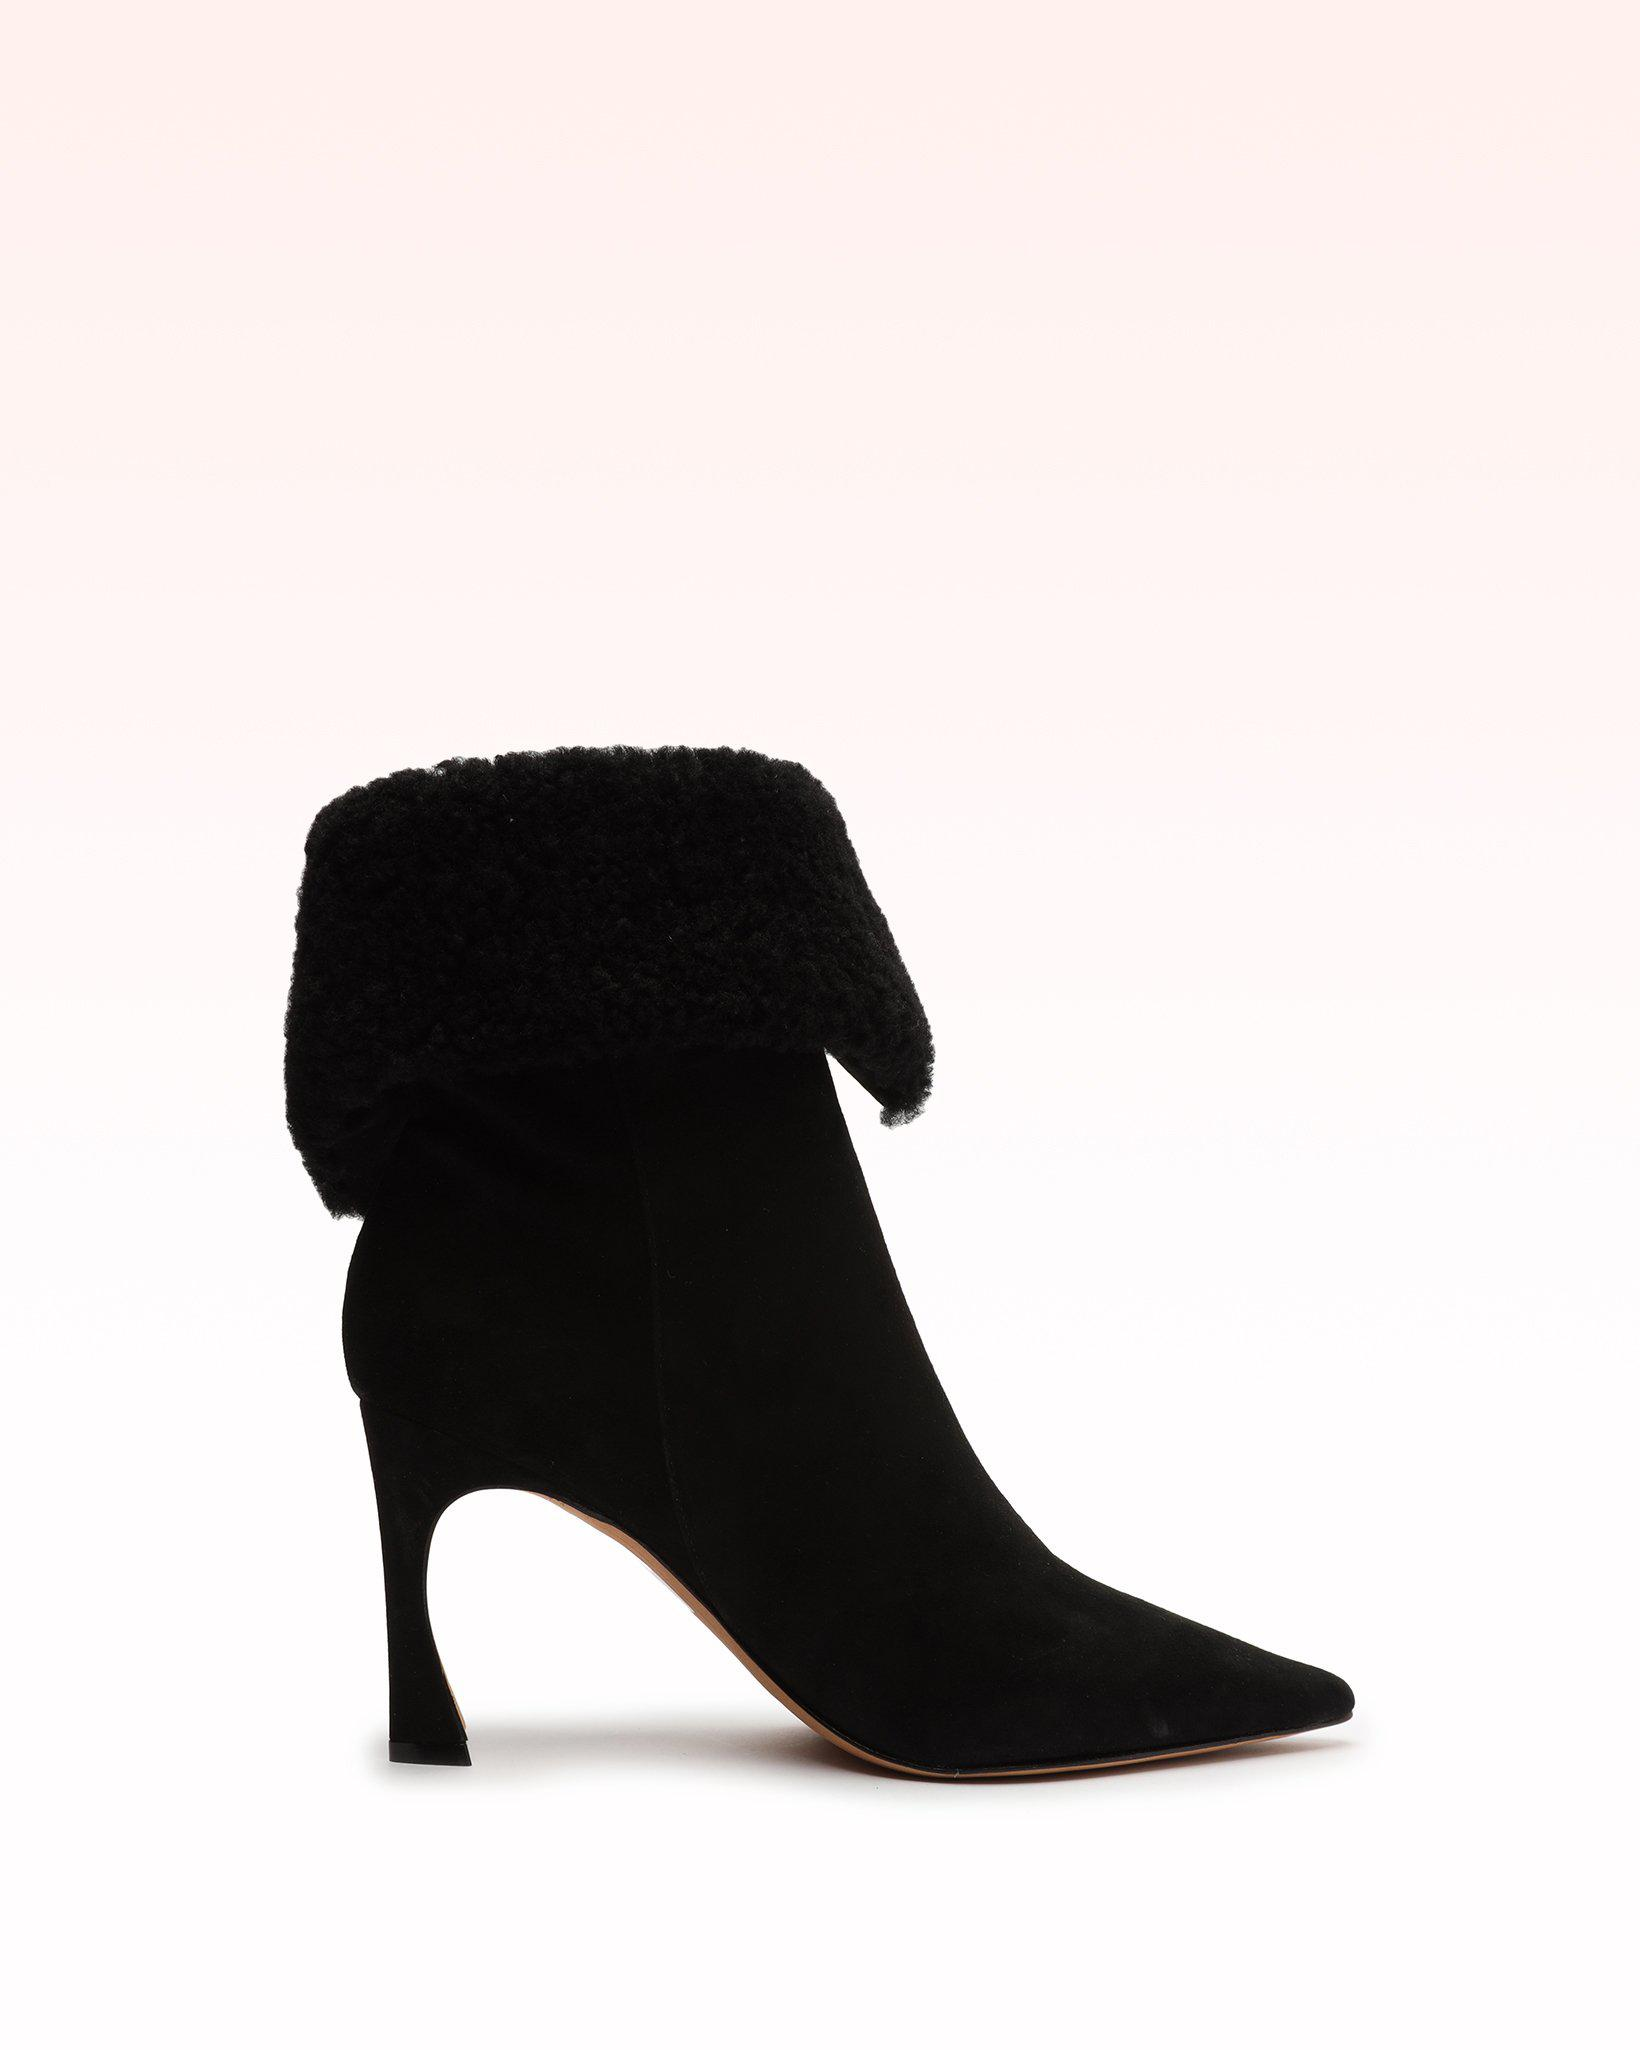 Mirabella 85 Curly Shearling & Suede Bootie